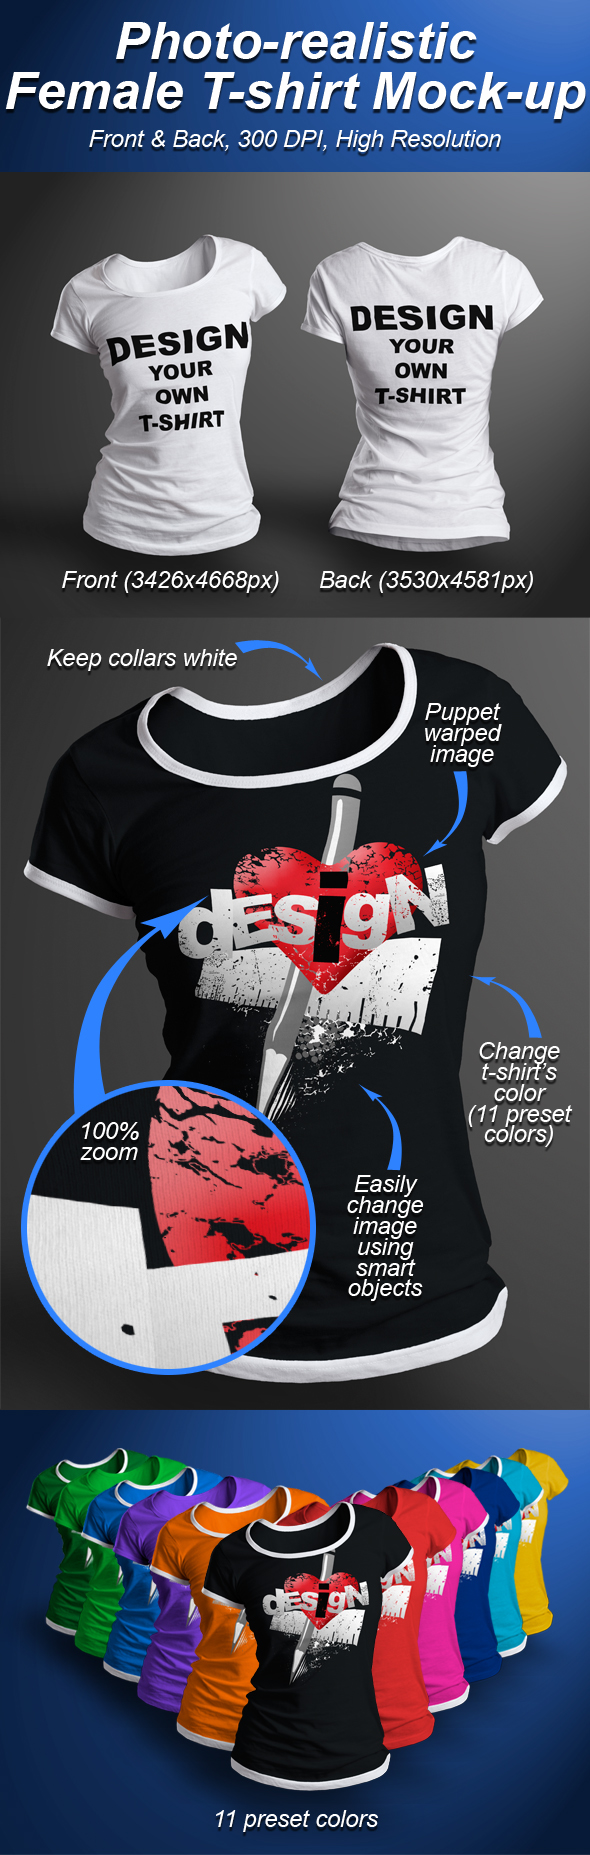 Design your own t-shirt female - Try Watching This Video On Www Youtube Com Or Enable Javascript If It Is Disabled In Your Browser